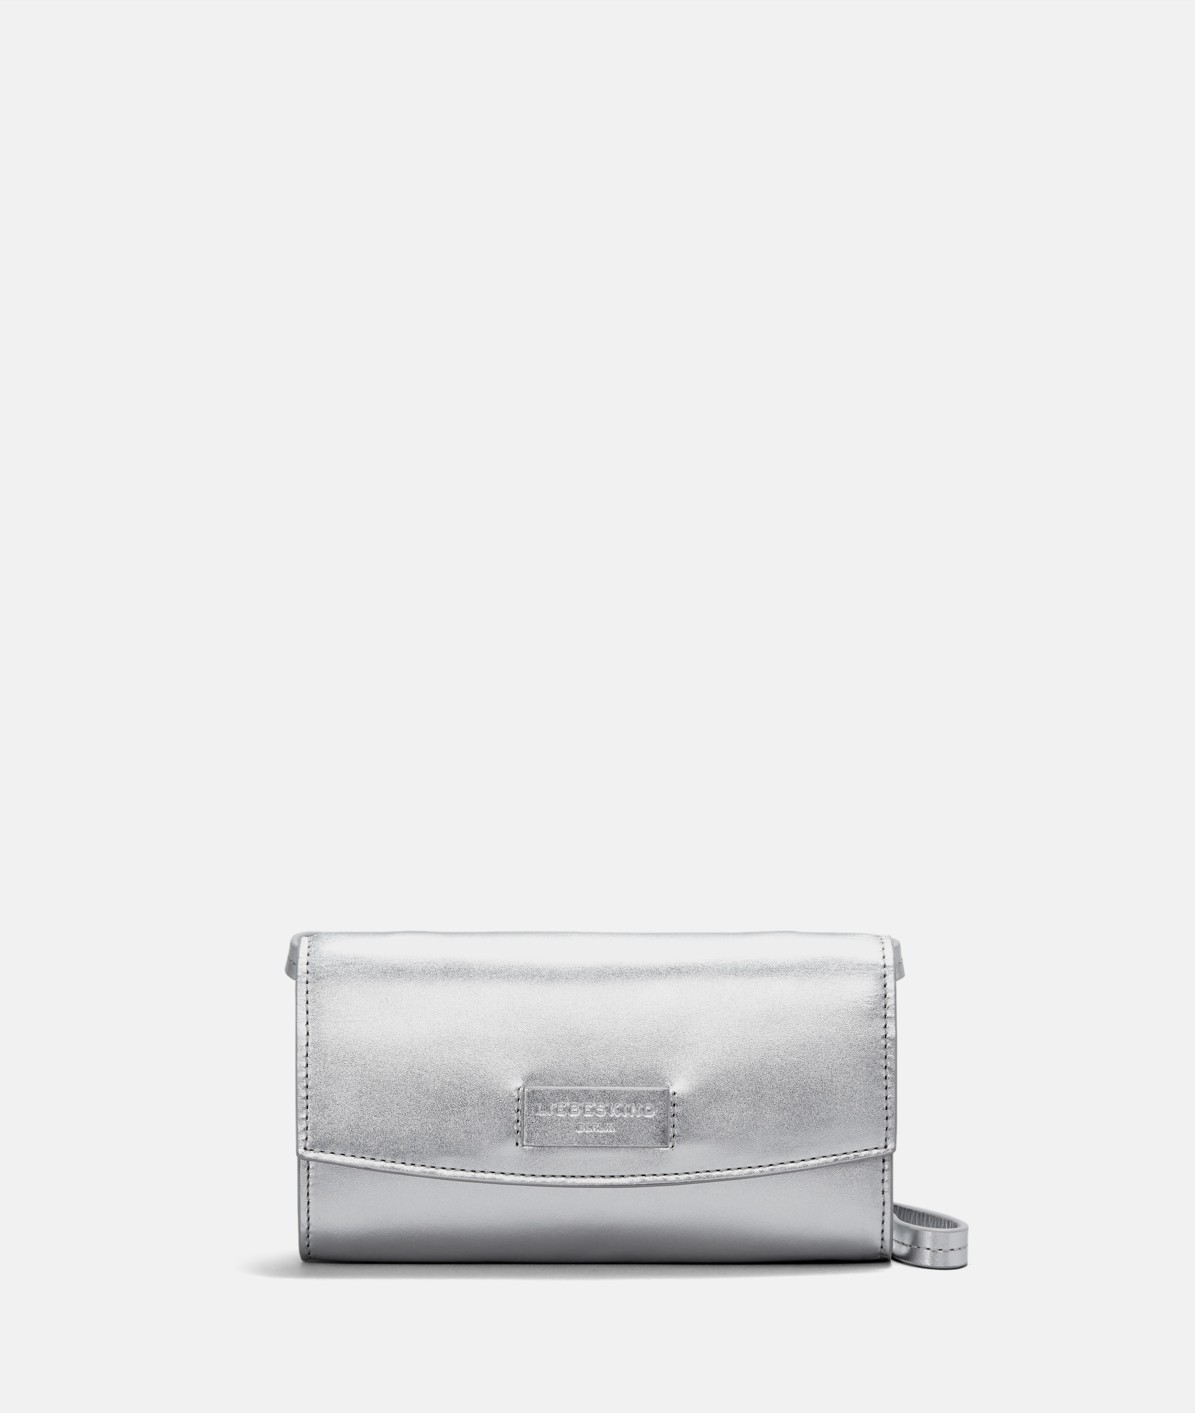 Shape-retentive leather clutch from liebeskind